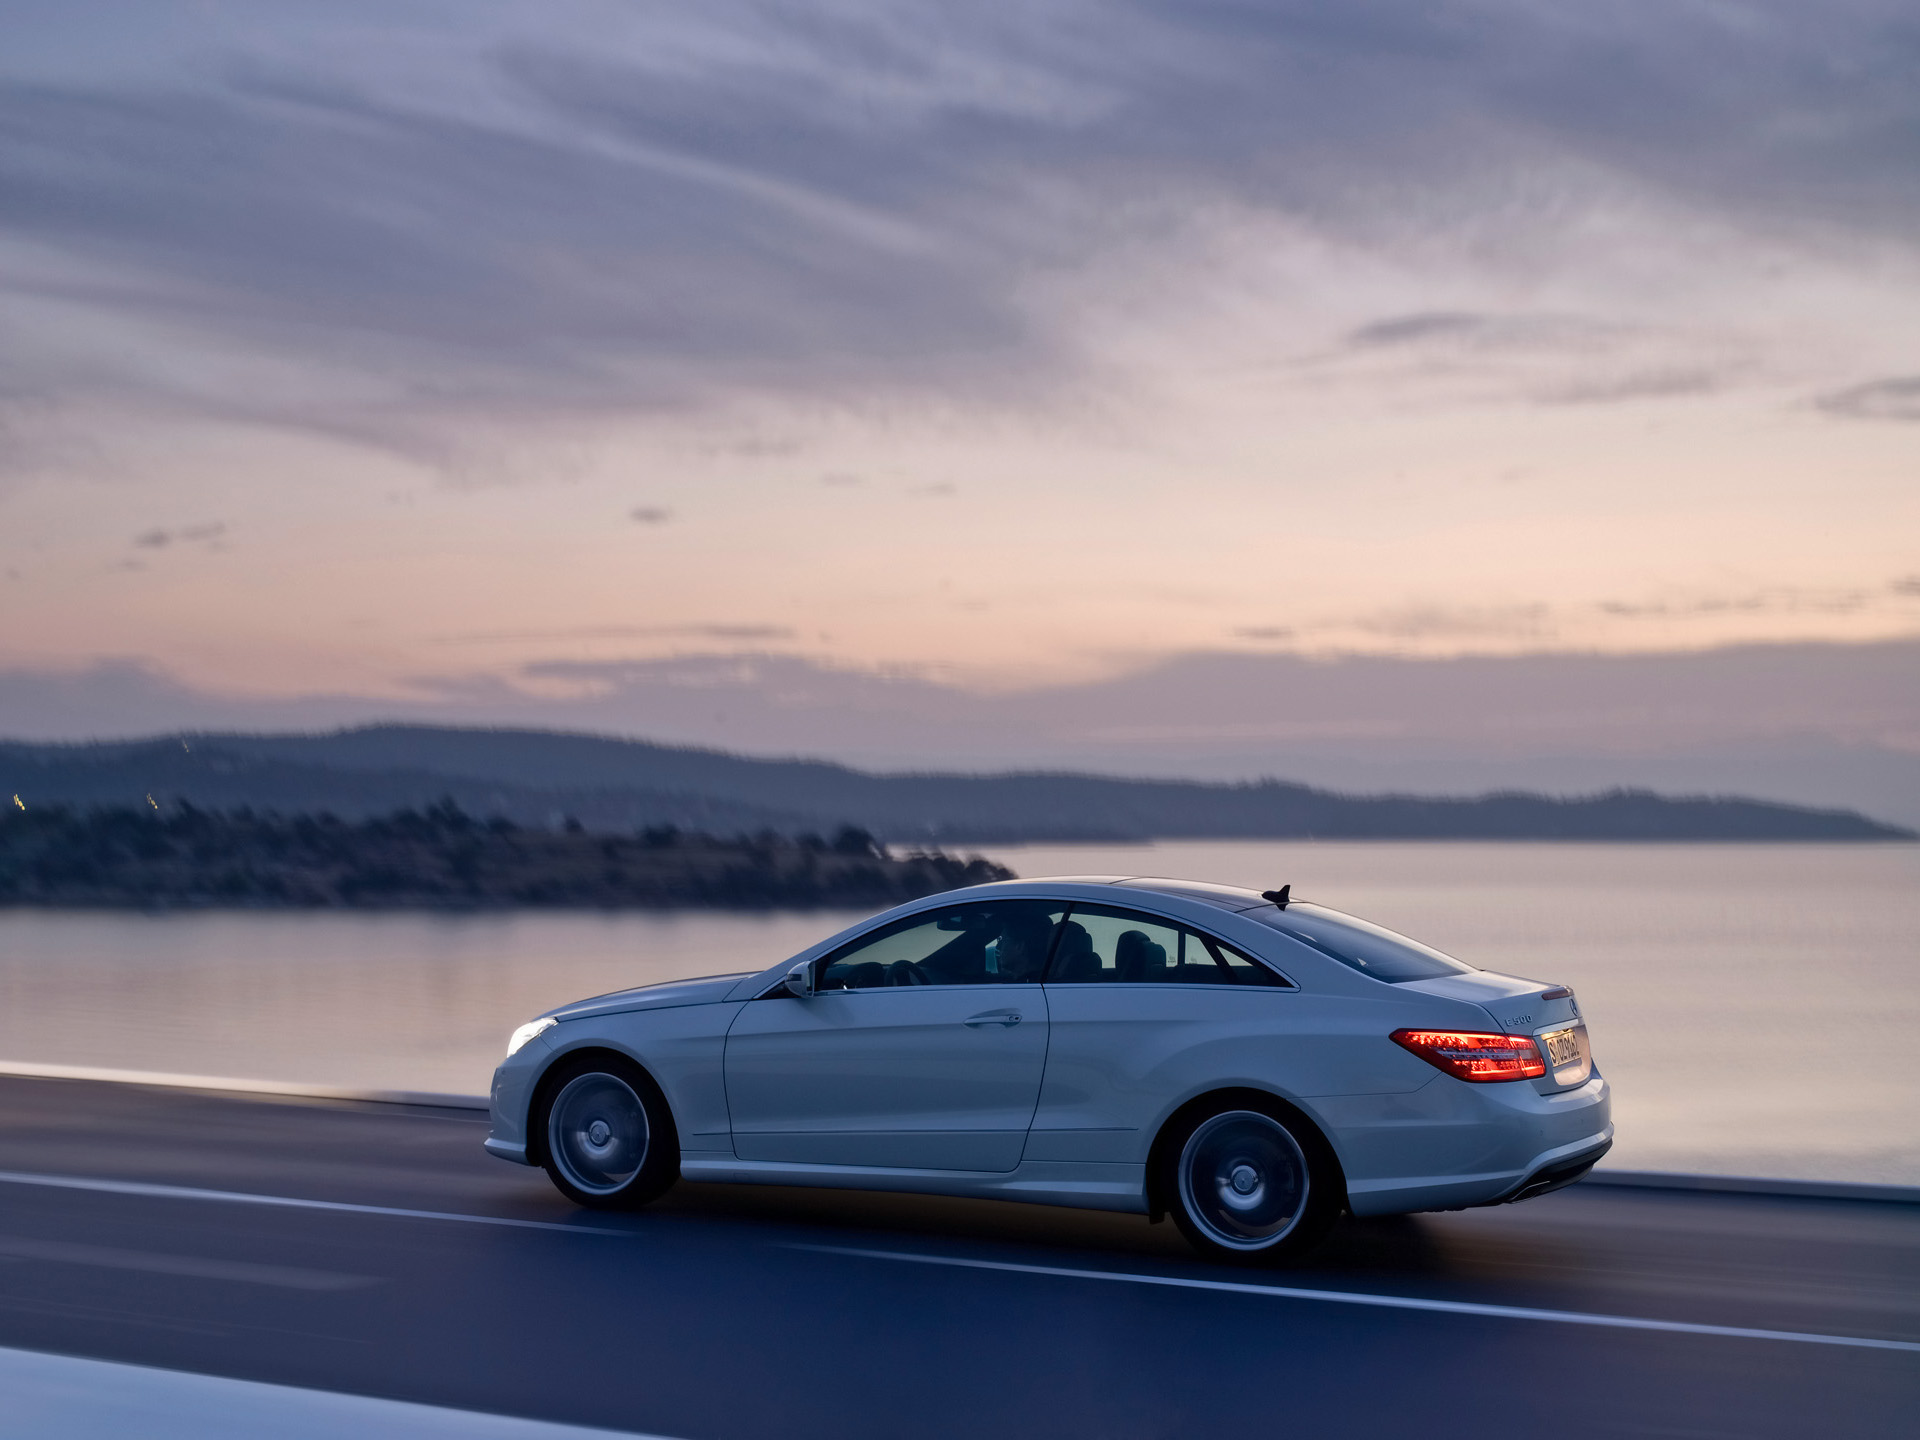 click to free download the wallpaper--Top Cars Image, E Coupe on the Road, Driving by the Sea, Be Slow and Enjoy the Scene! 1920X1440 free wallpaper download